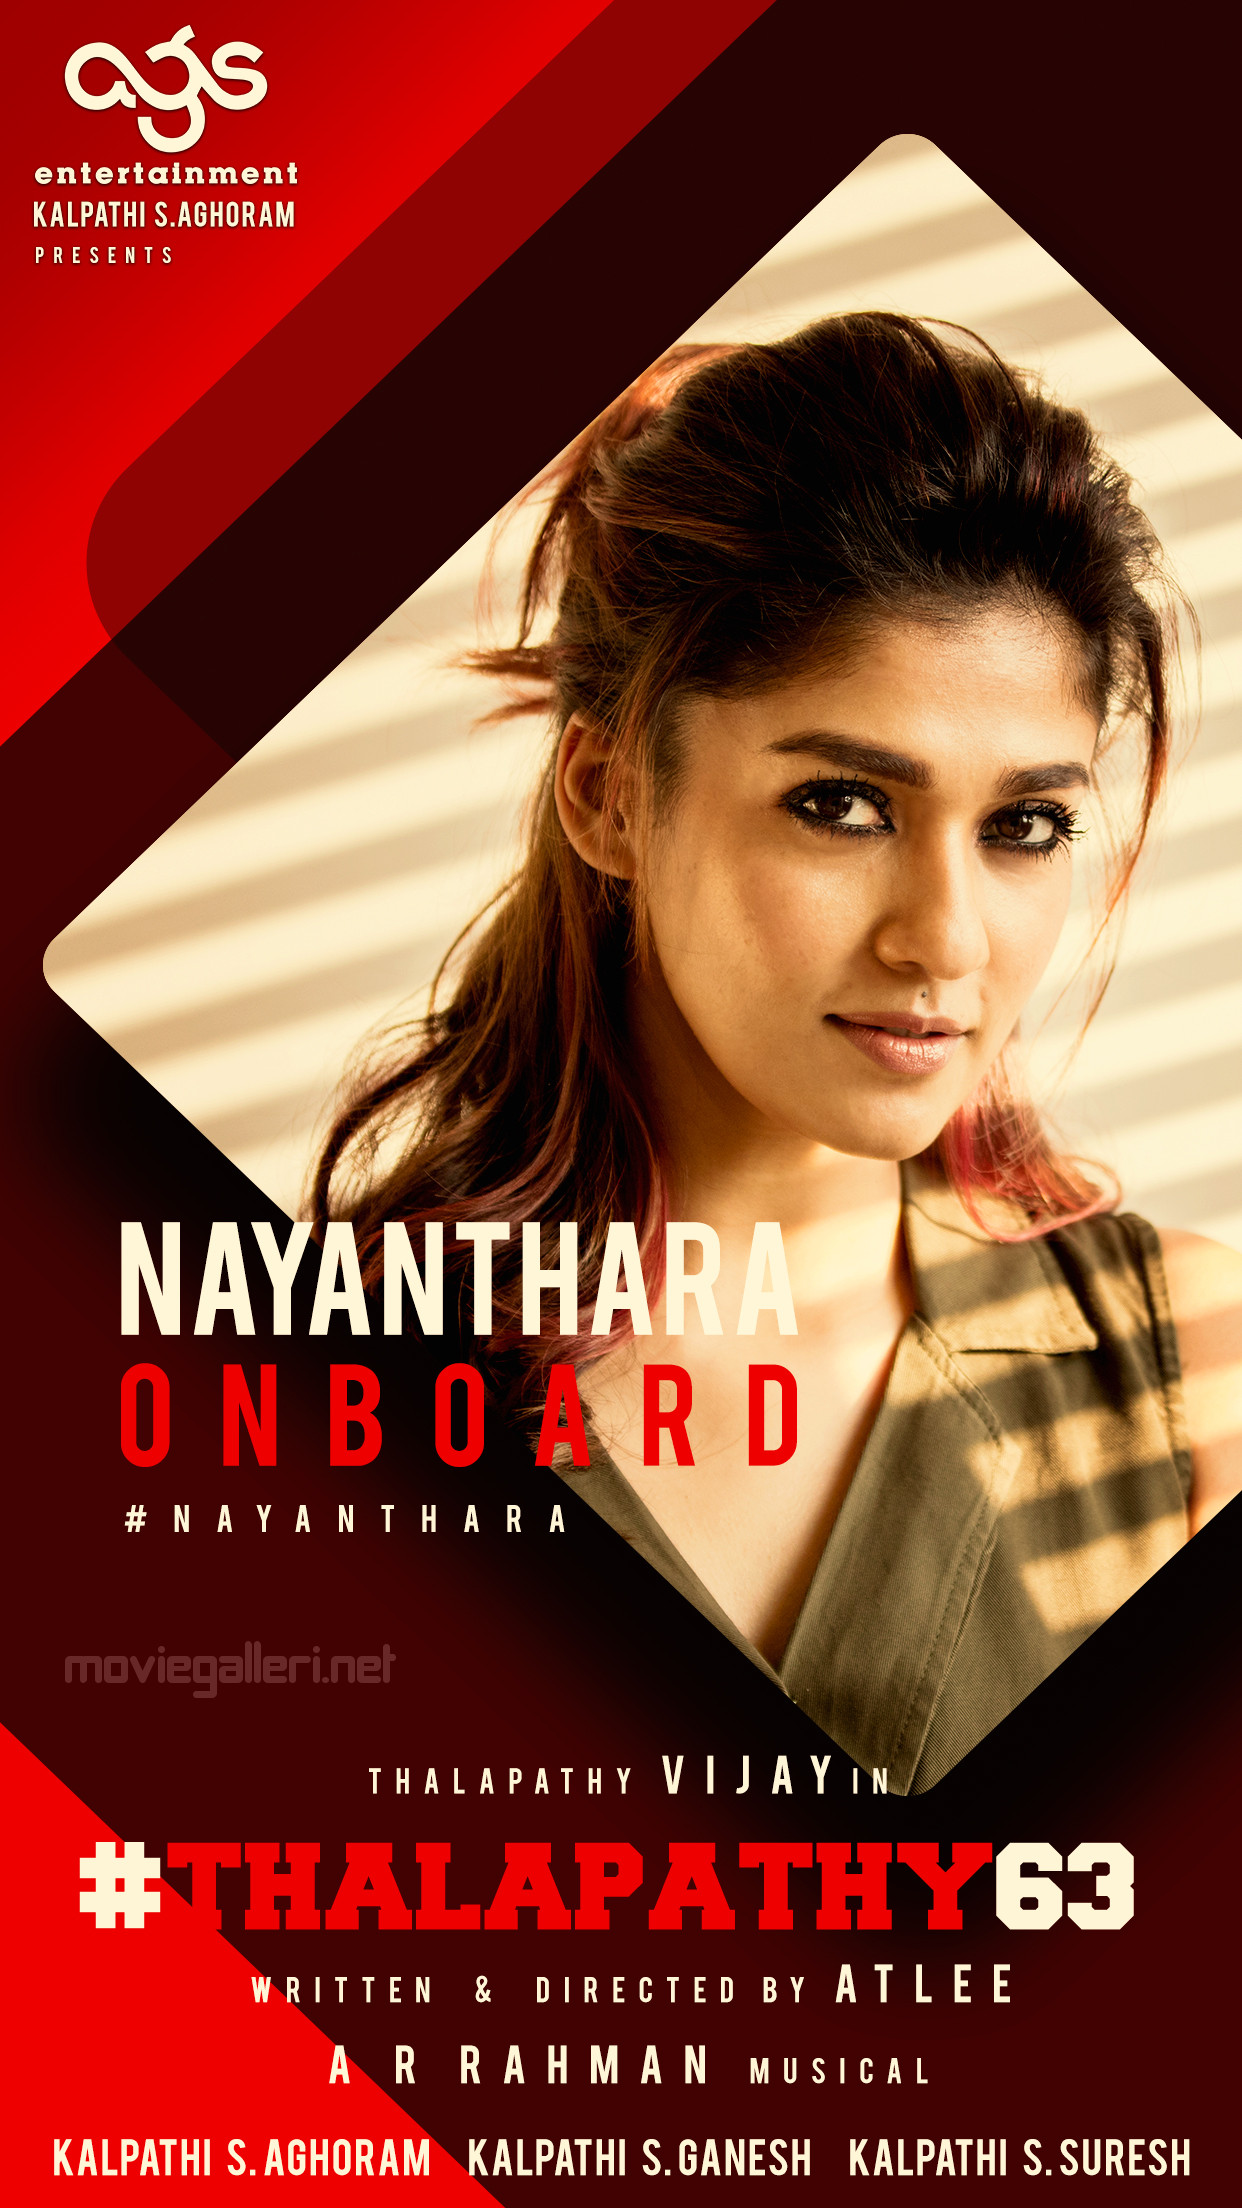 Tamil Actress Nayanthara On Board For Thalapathy Vijay 63 Movie Directed by Atlee, Music by AR Rahman. Produced by AGS Cinemas.